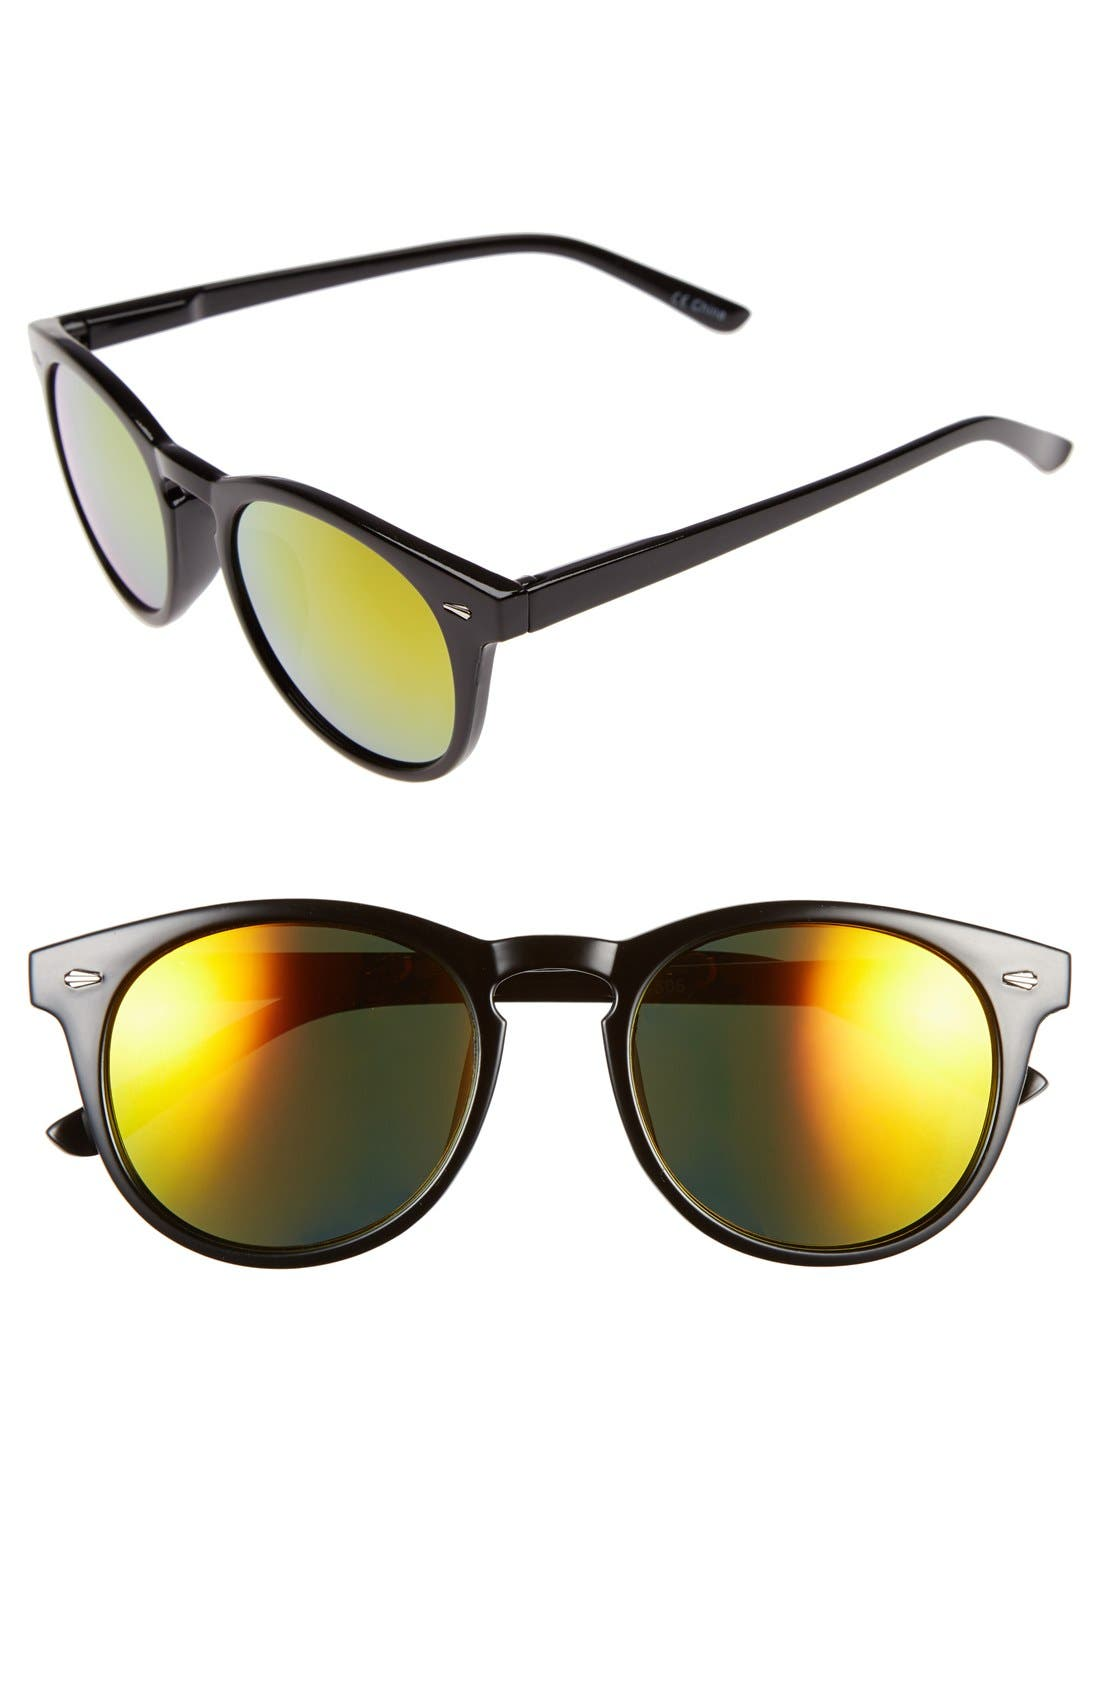 Alternate Image 1 Selected - Sole Society 'Kate' 48mm Round Mirrored Sunglasses